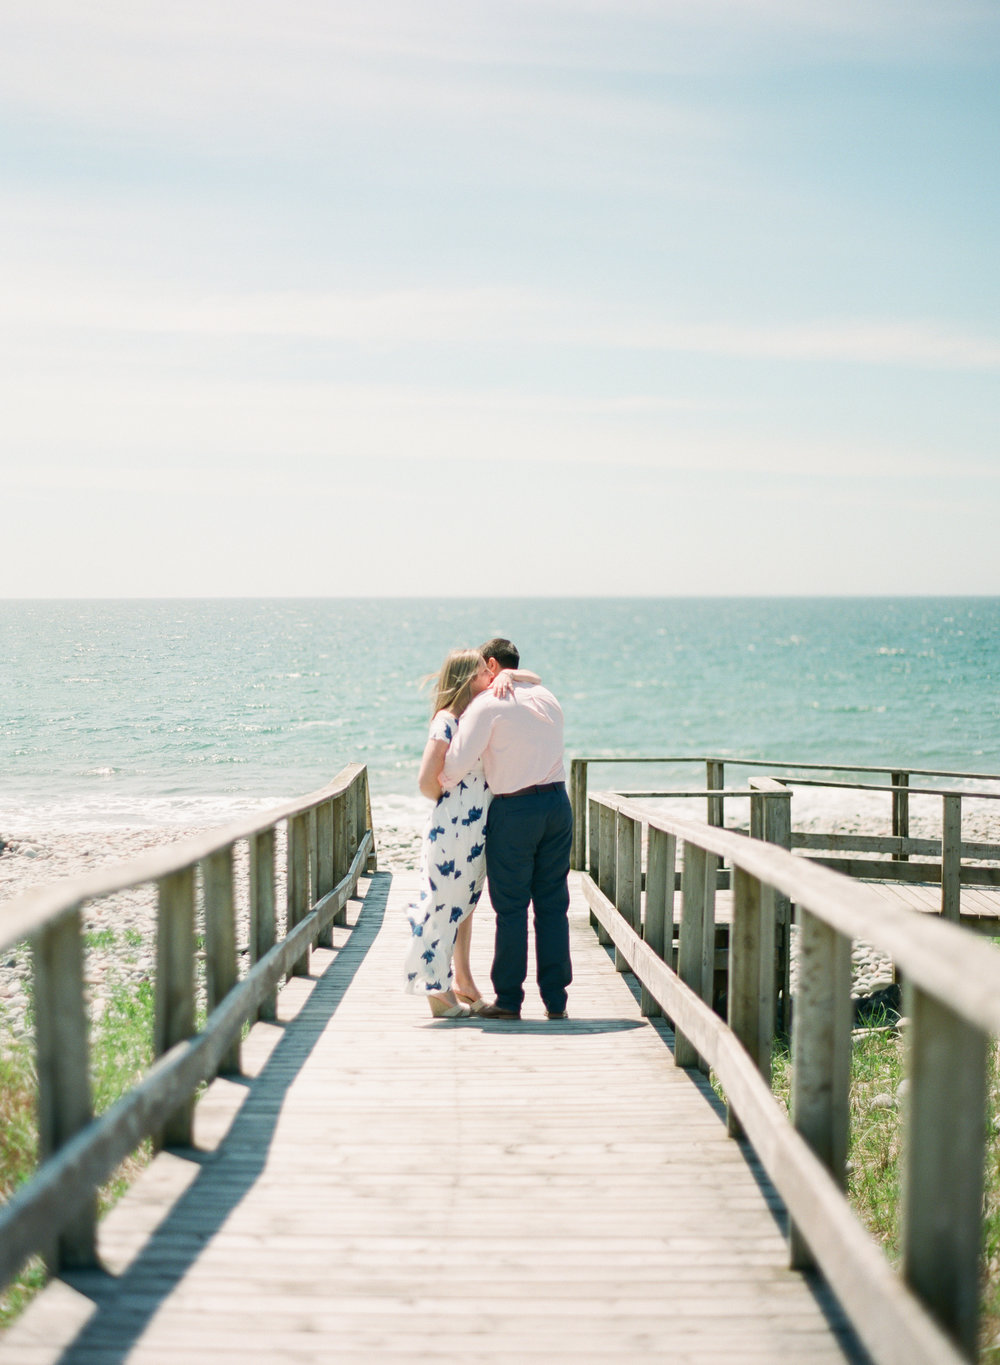 Jacqueline Anne Photography-Melissa and Daniel - Contax 645 - Beach Full Sun-24-16.jpg